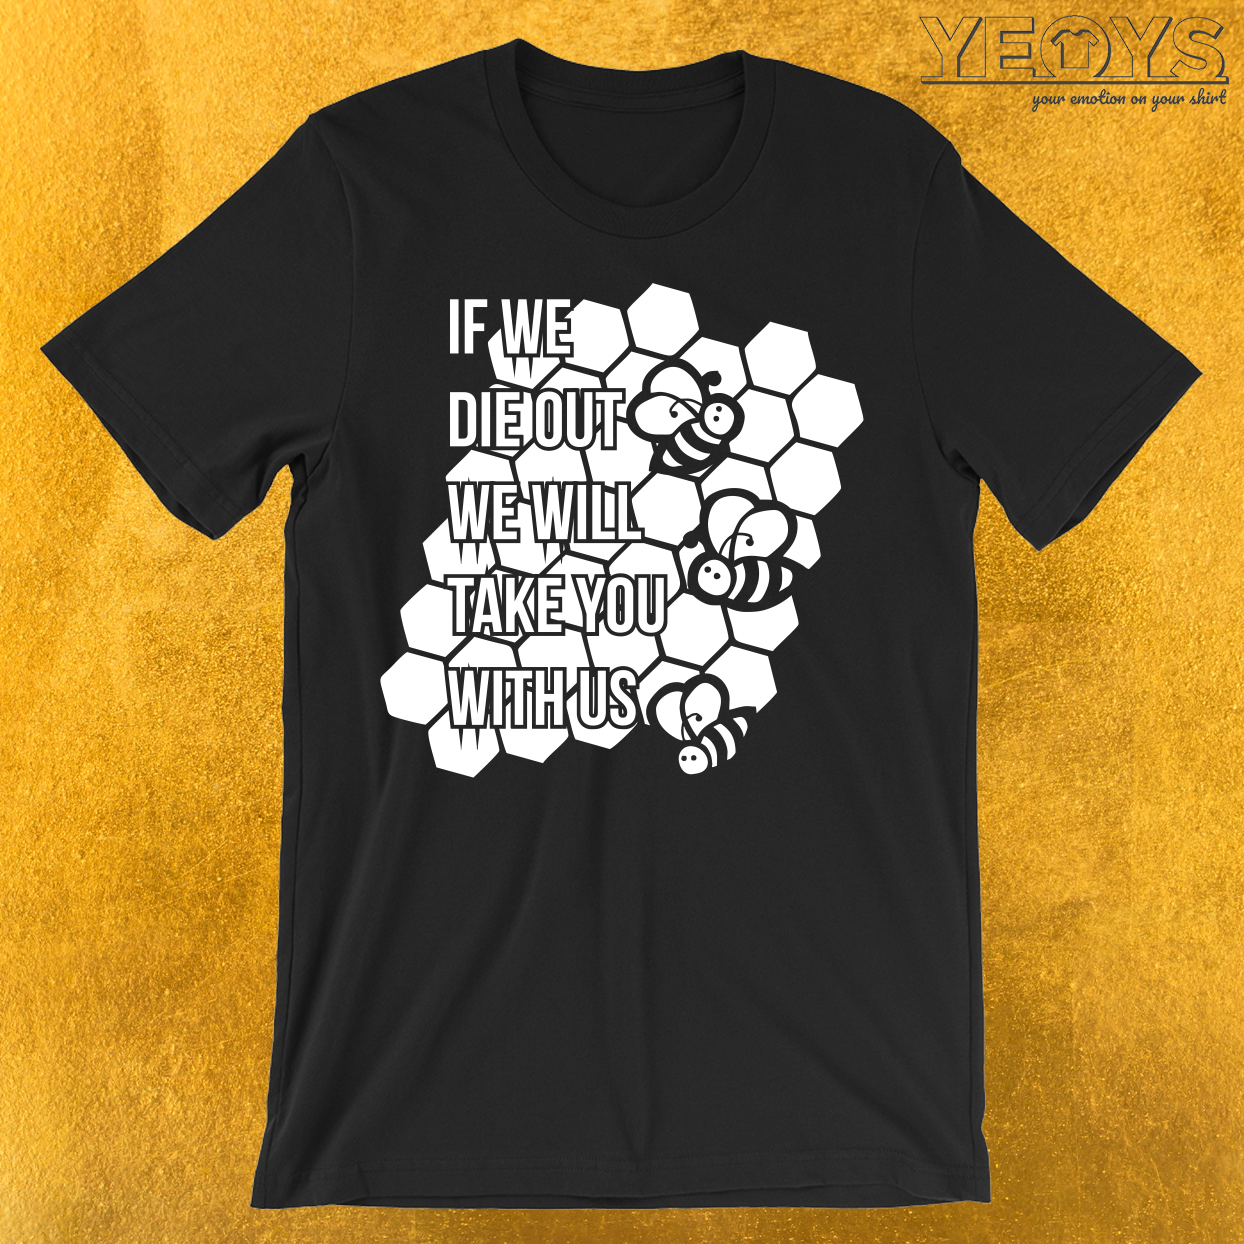 If We Die Out We Will Take You With Us Bee T-Shirt